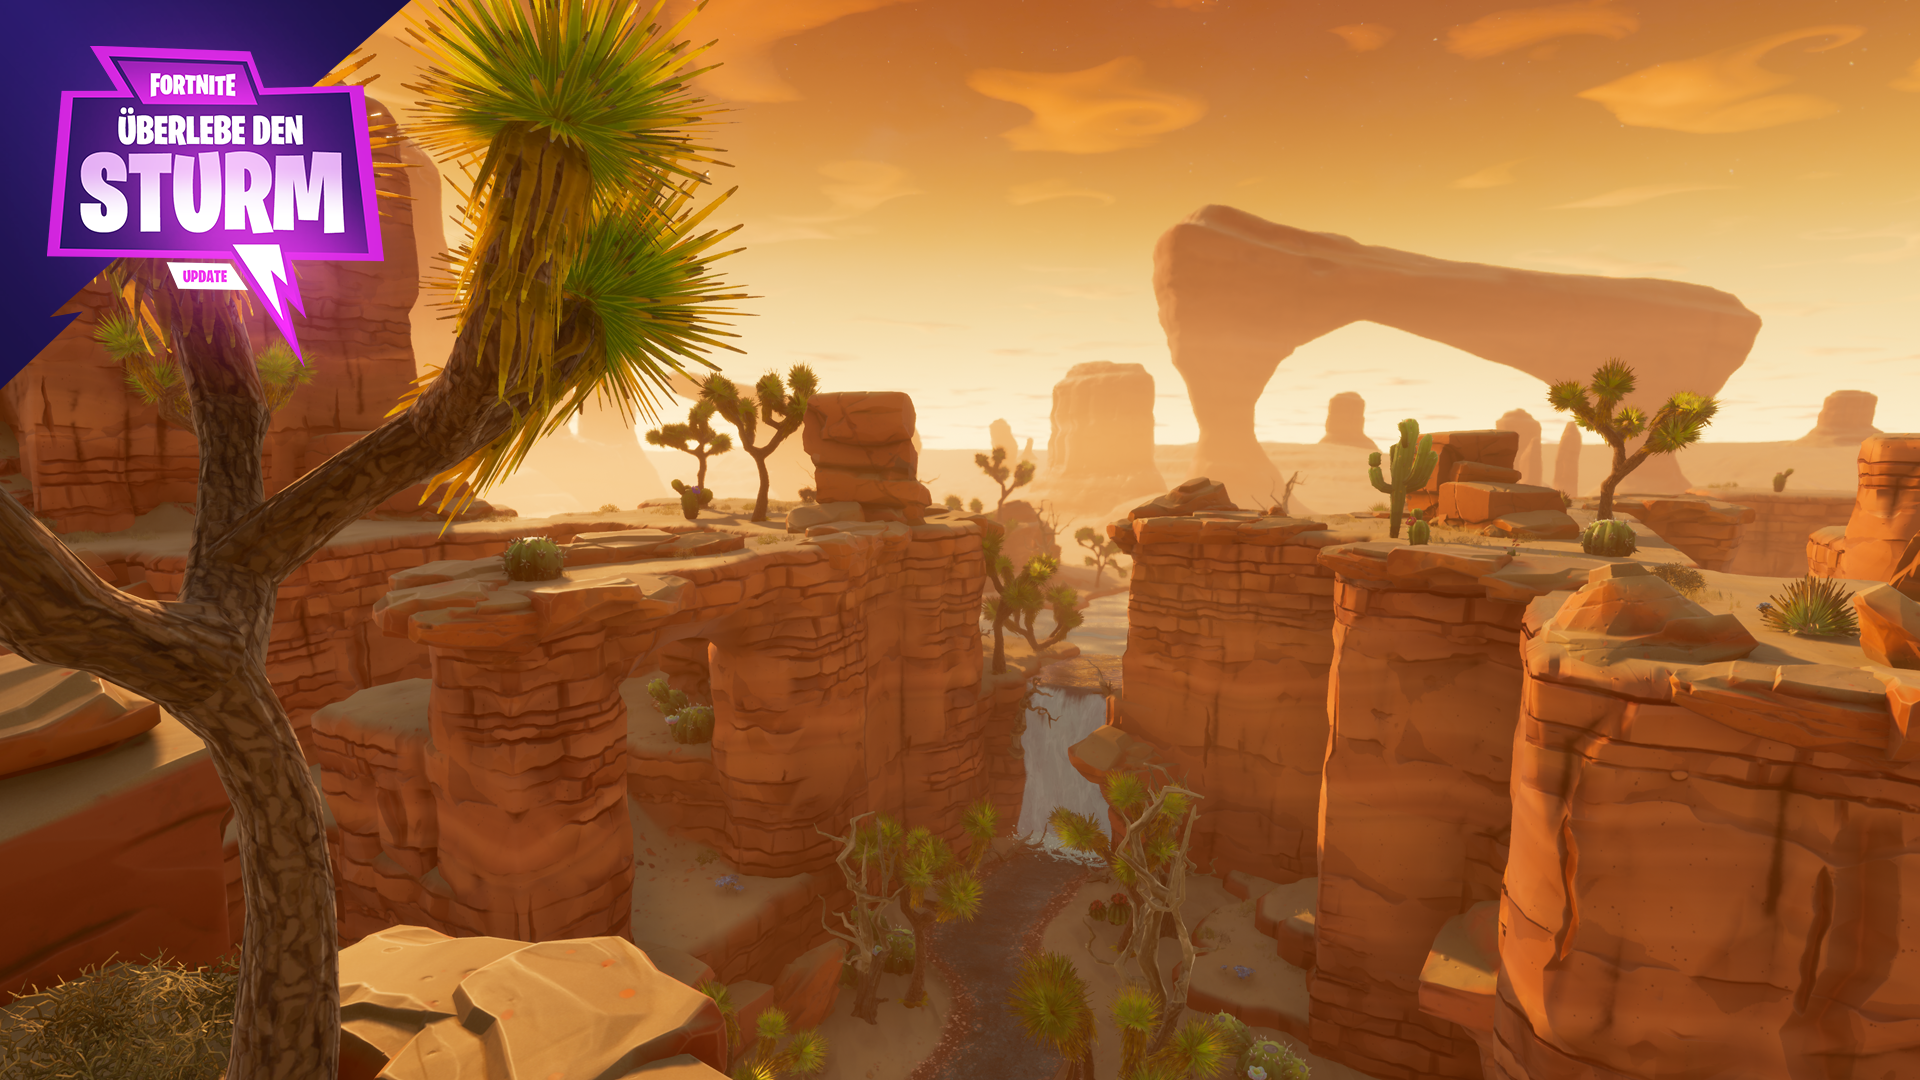 Fortnite%2Fblog%2Fsurvive-the-storm---release-notes%2FDE_3-Canny-Valley-1920x1080-c2a0b257961259b92676ef83165b27164128b3b4